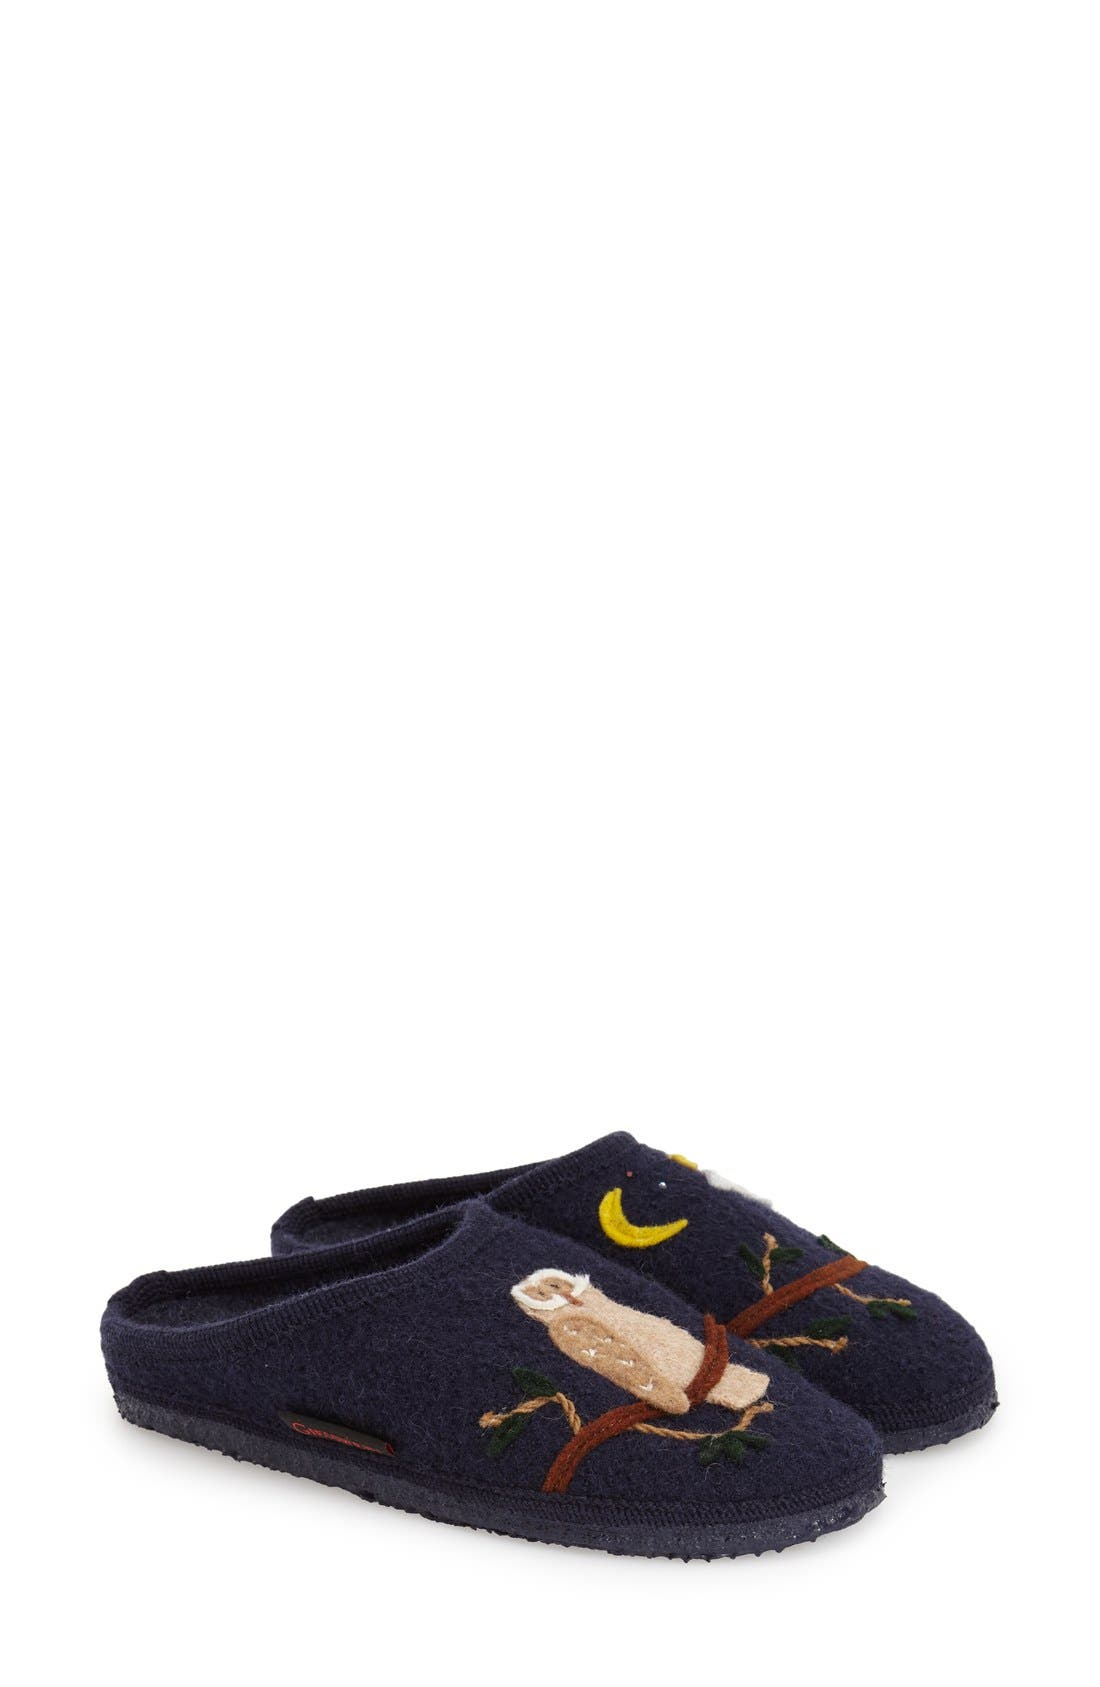 'Mado' Wool Slipper,                         Main,                         color, Navy Wool